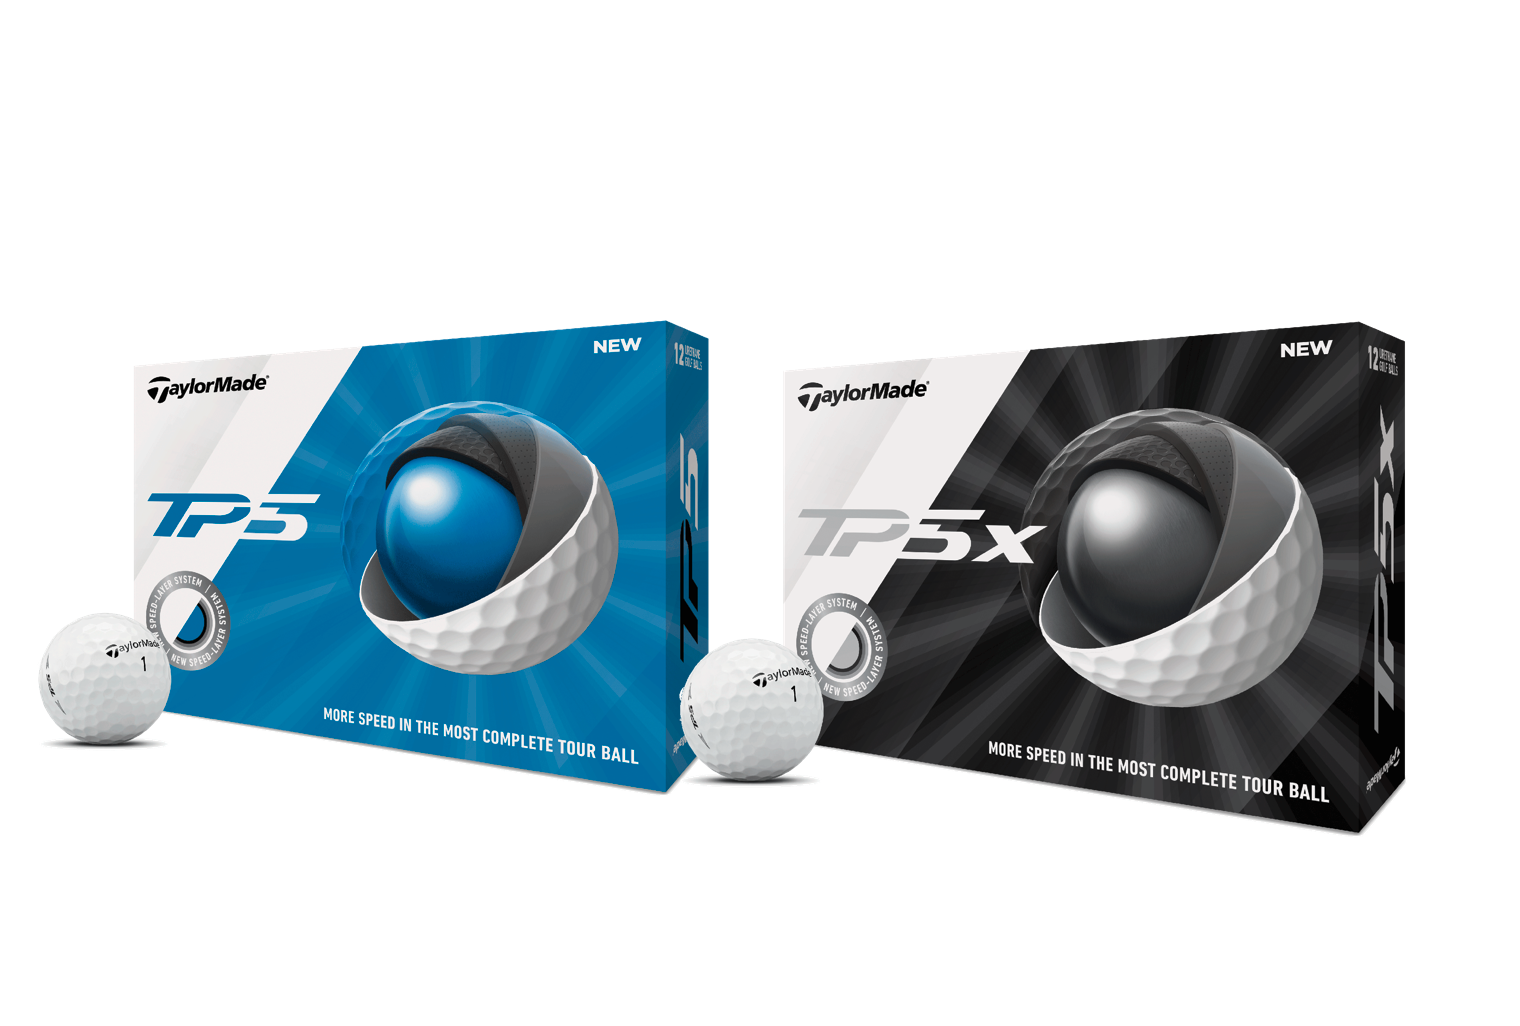 WIN a dozen TaylorMade golf balls sweepstakes